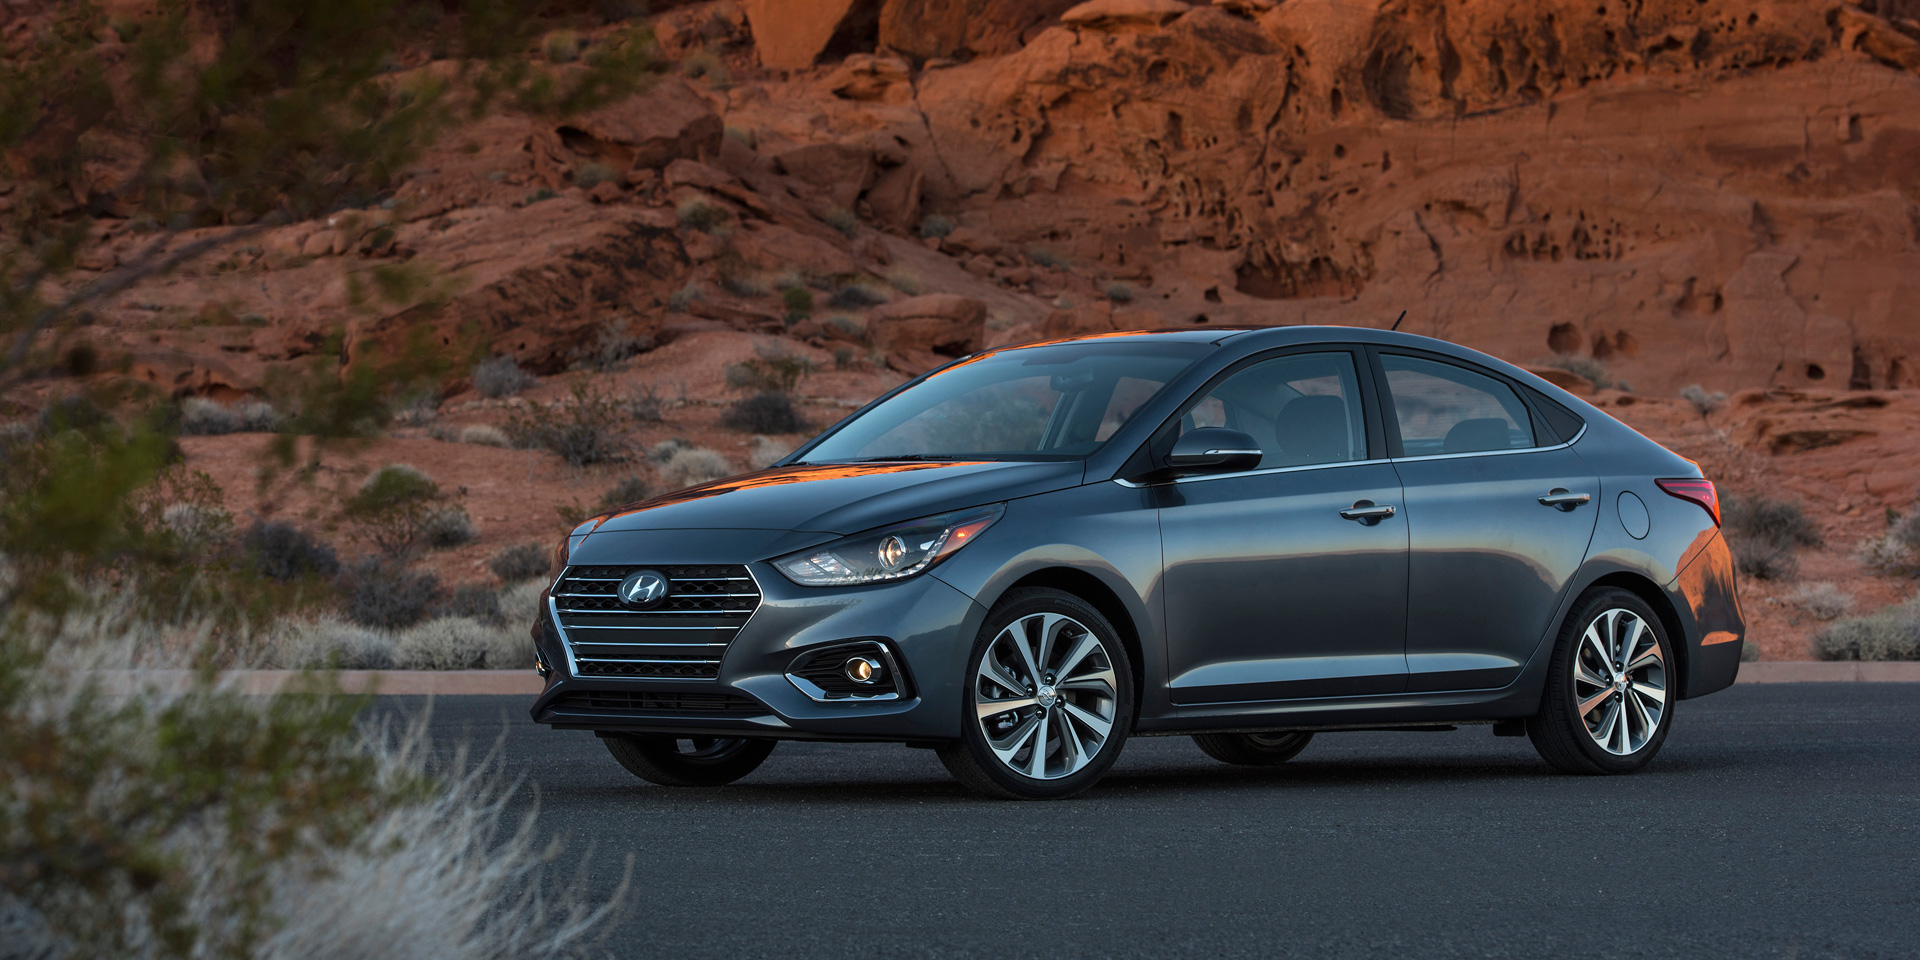 2020 Hyundai Accent Style